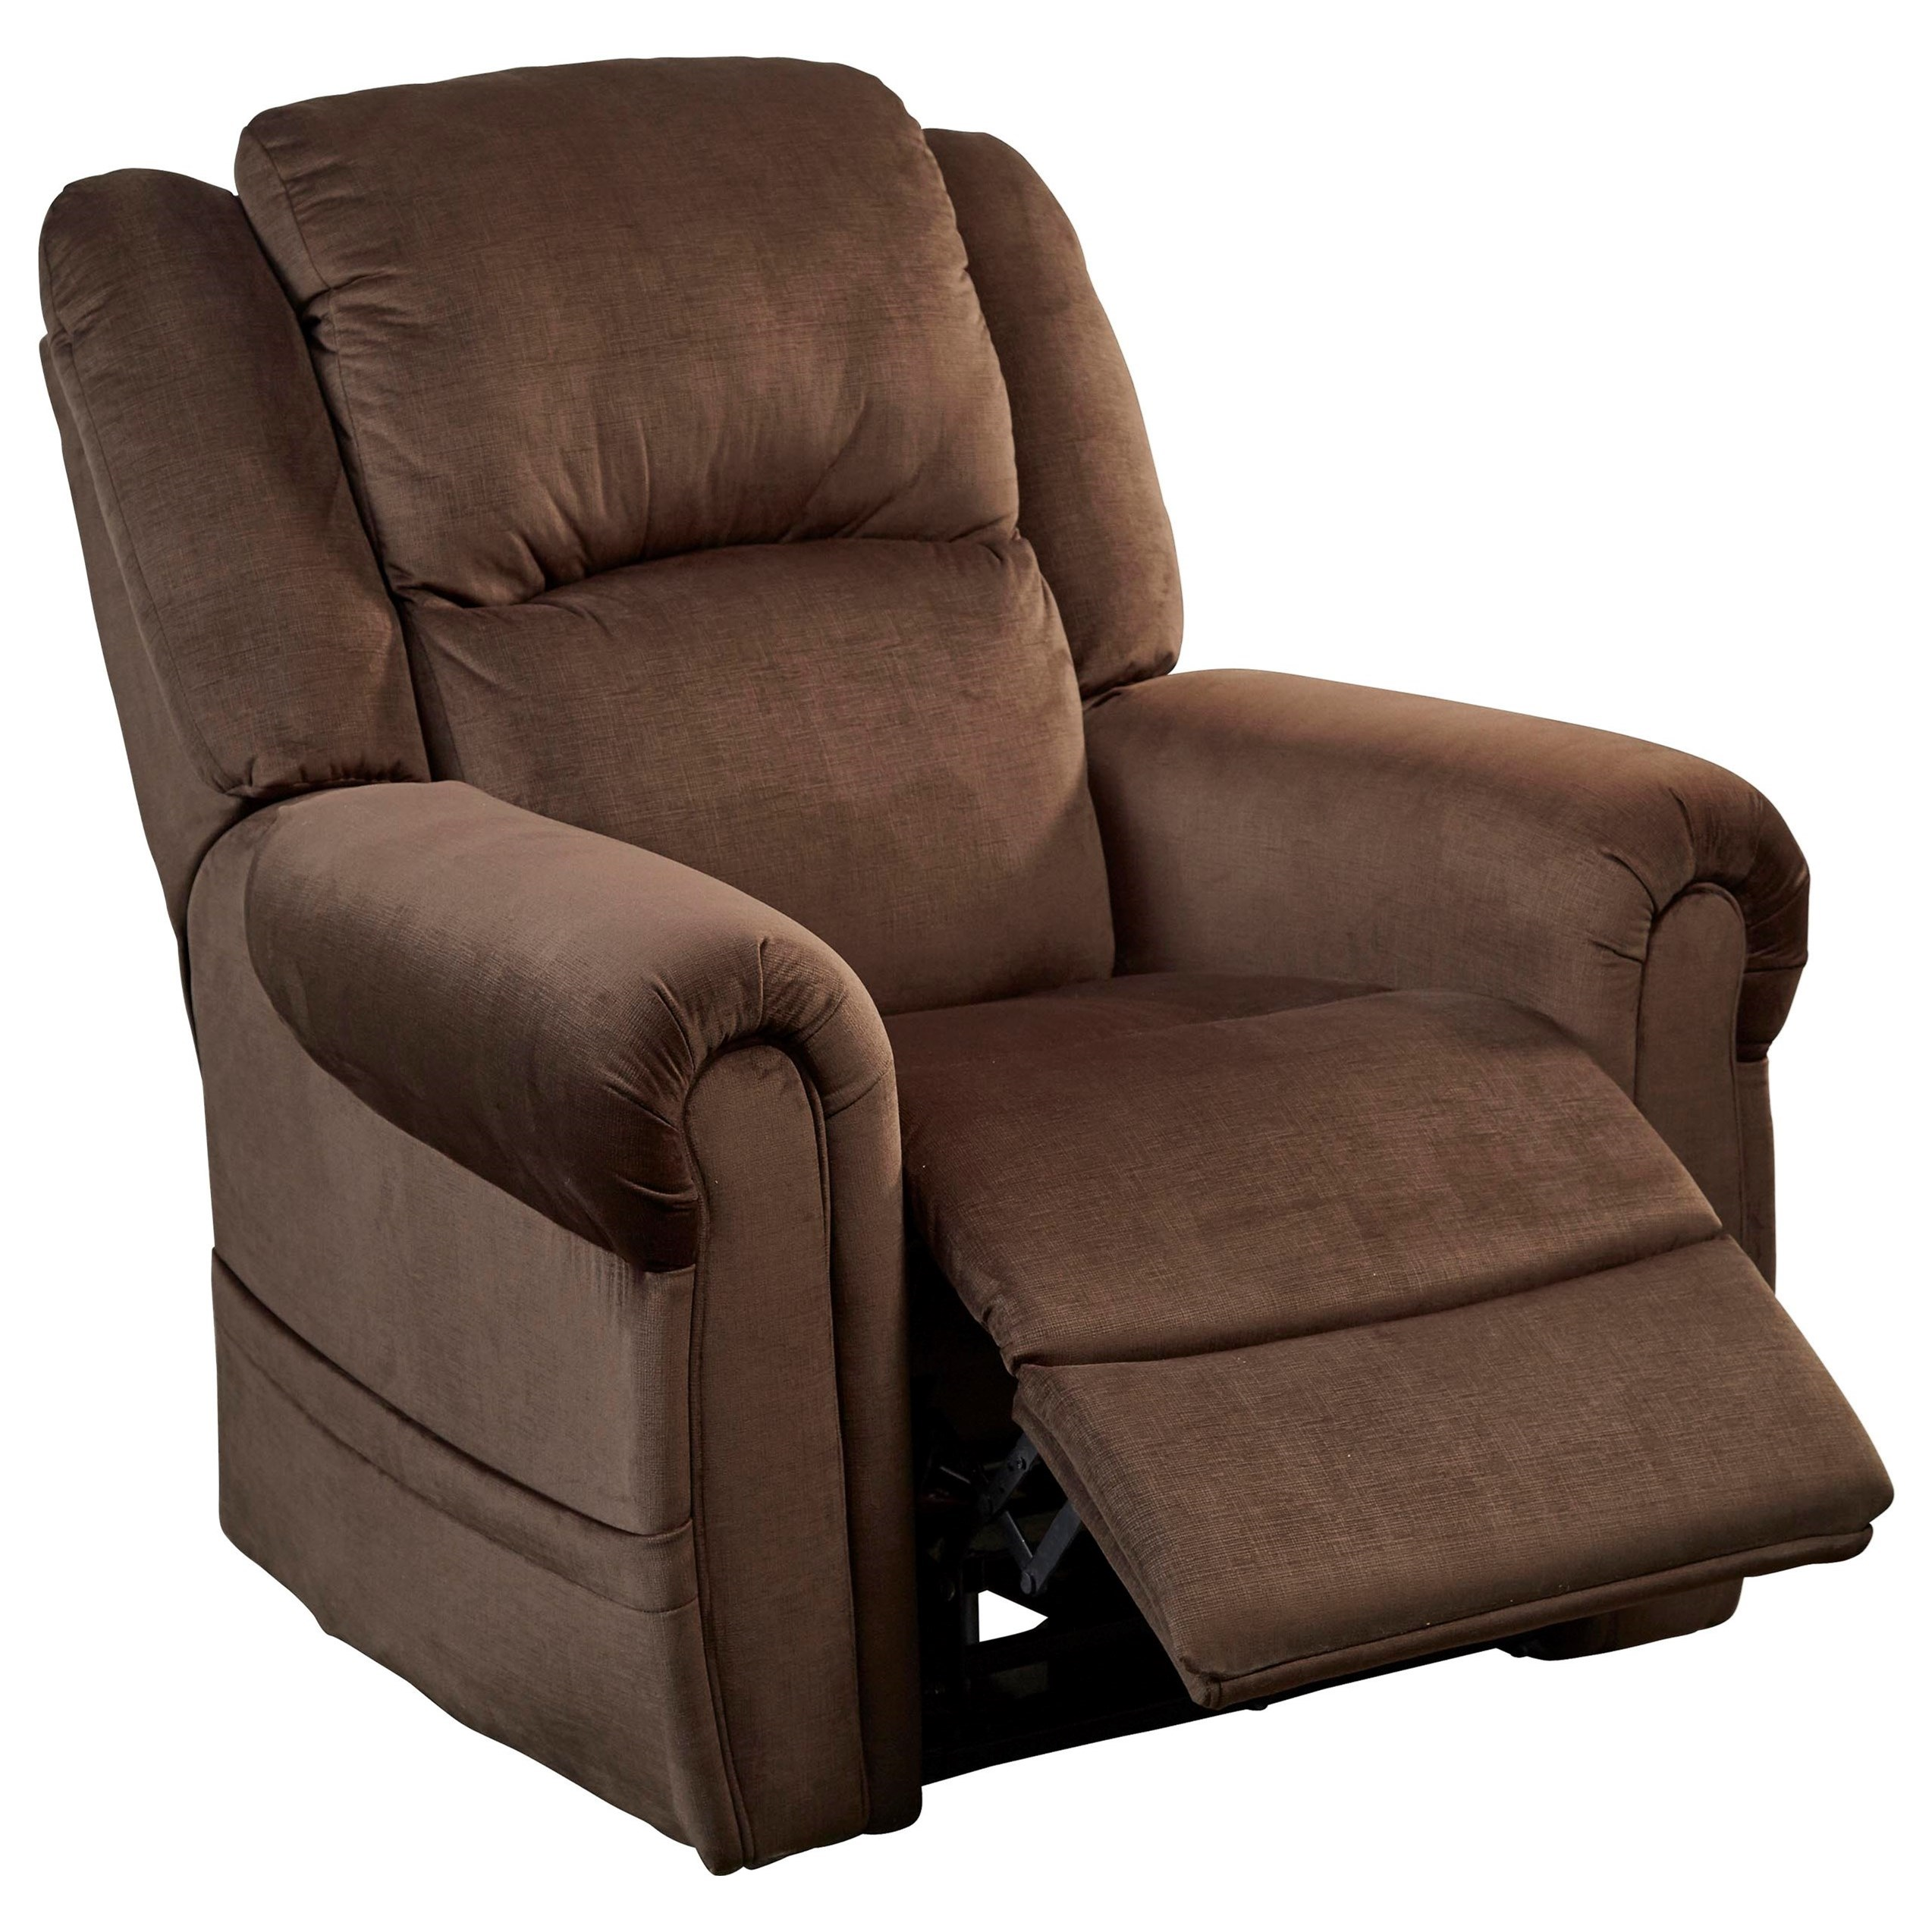 Catnapper Lift Chairs Spencer Power Lift Recliner With Power Headrest By